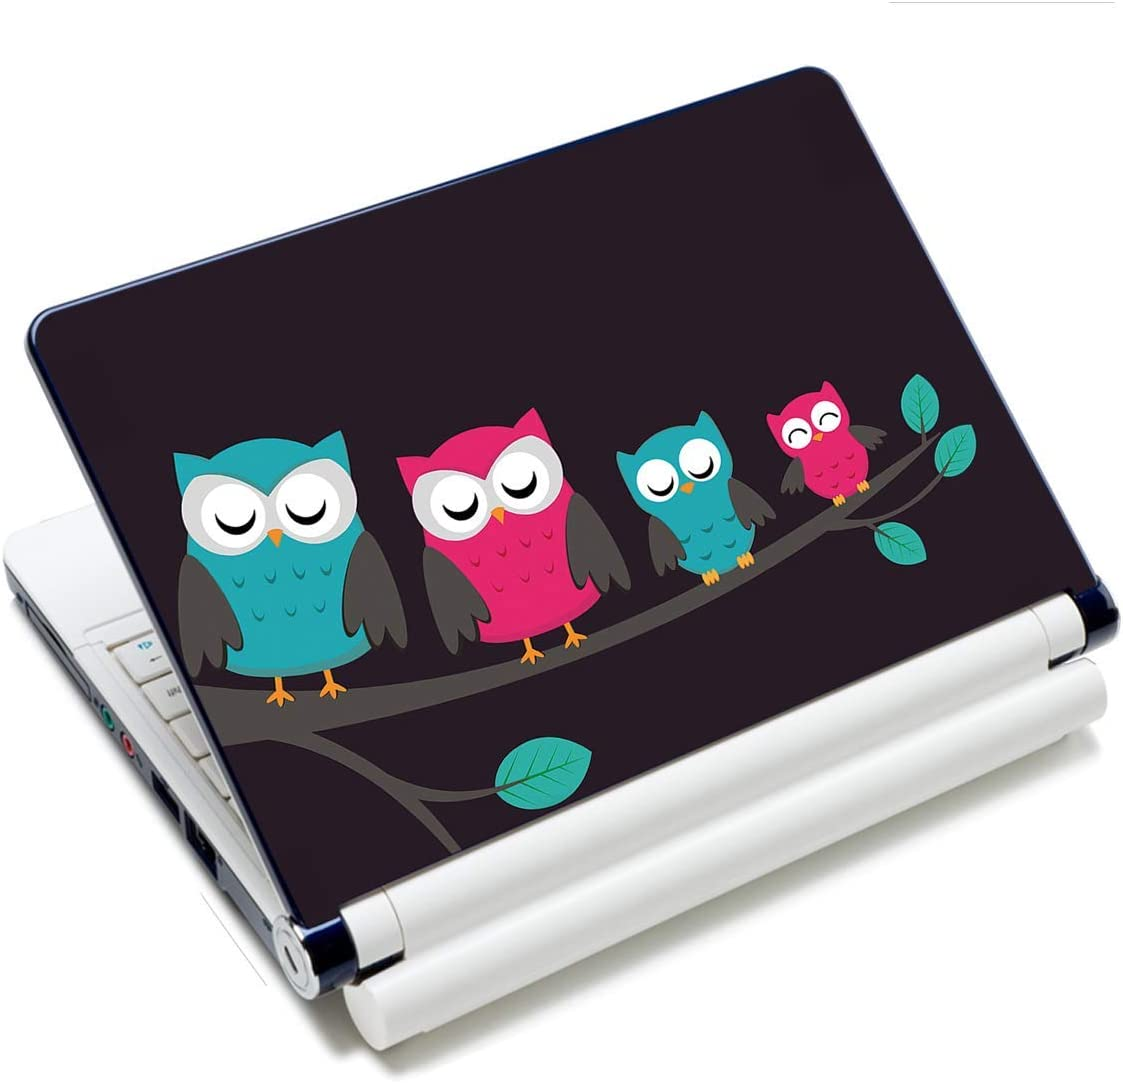 Laptop Notebook Skin Sticker Cover Decal Fits 12 13 13.3 14 15 15.4 15.6 inch Laptop Protector Notebook PC | Easy to Apply, Remove and Change Styles (Cute Owls)